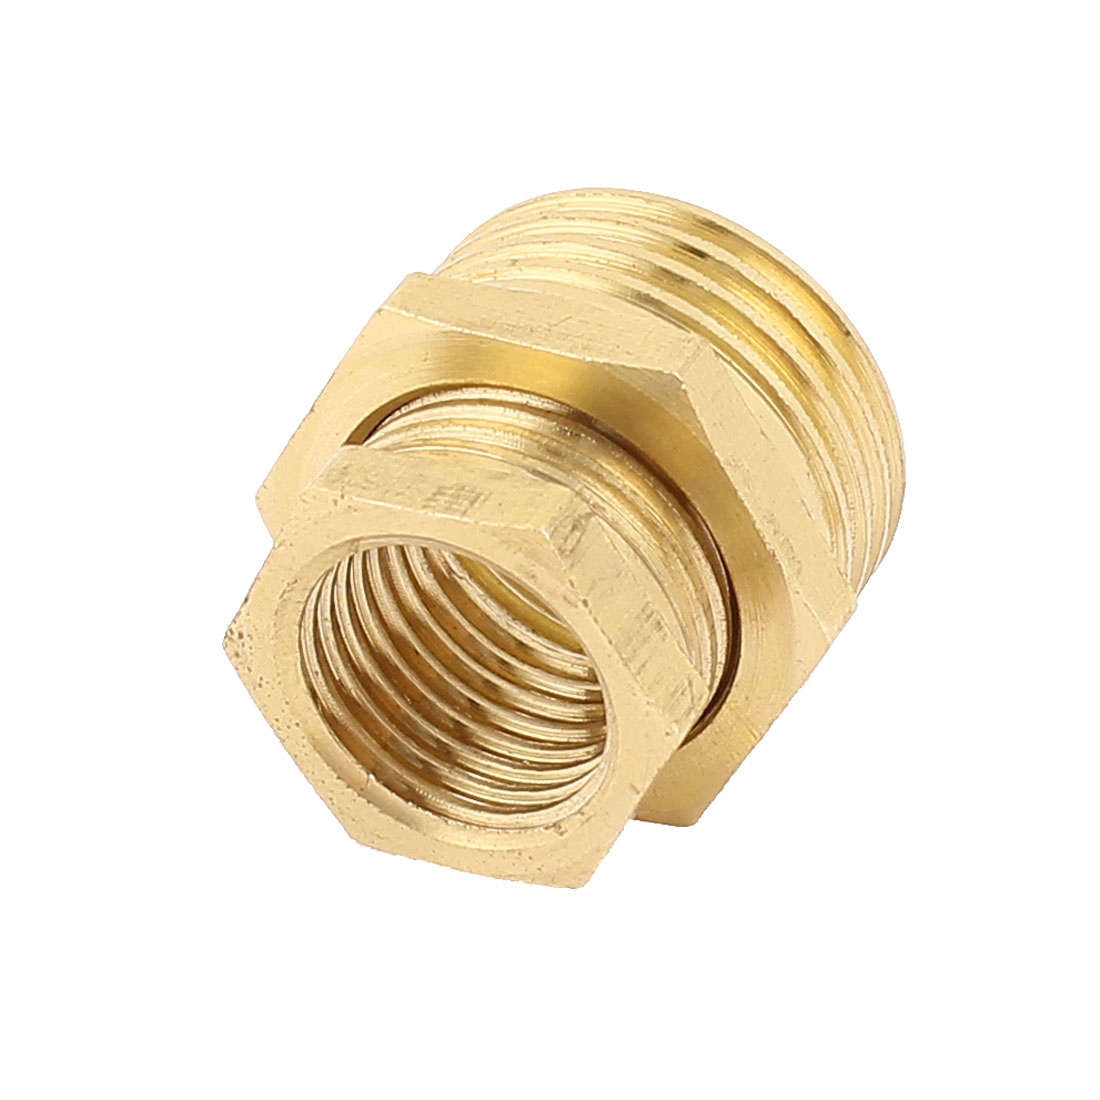 2 in 1 1/2BSP Male x 1/4BSP Female Brass Air Pipe Fittings Reducer Hex Bushing Adapter Caps Gold Tone